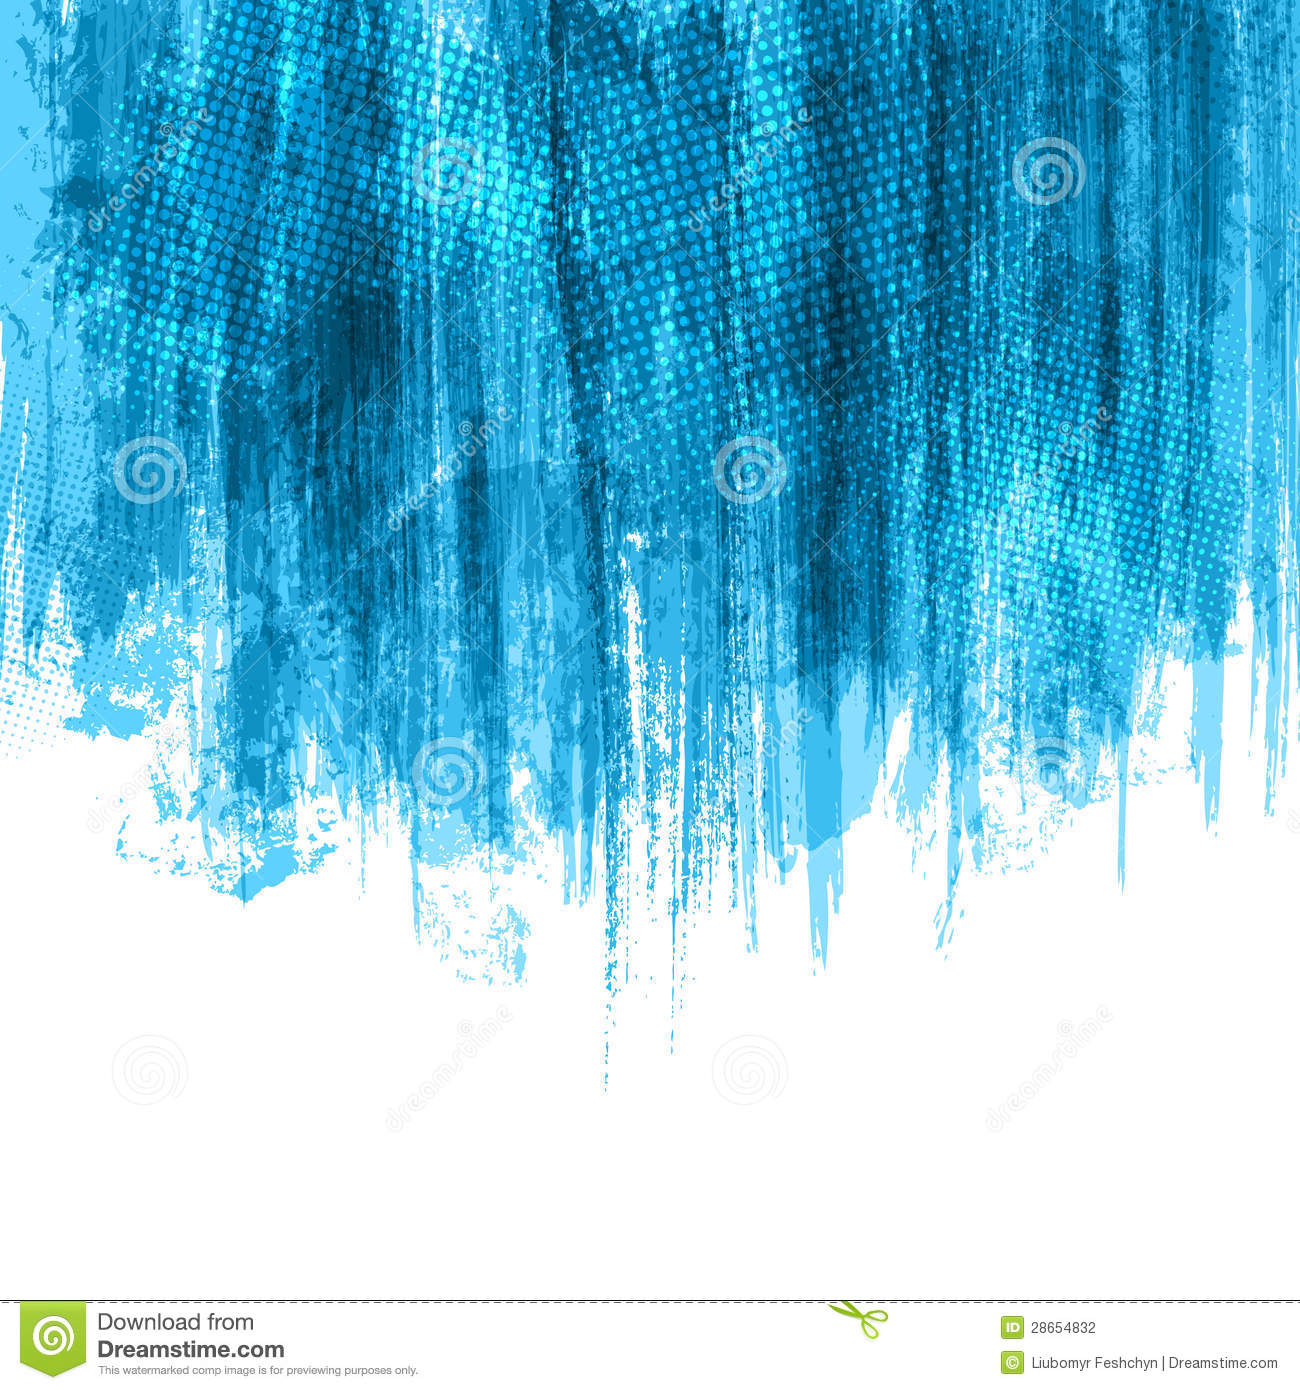 Blue Paint blue paint splashes background stock photography - image: 28654832